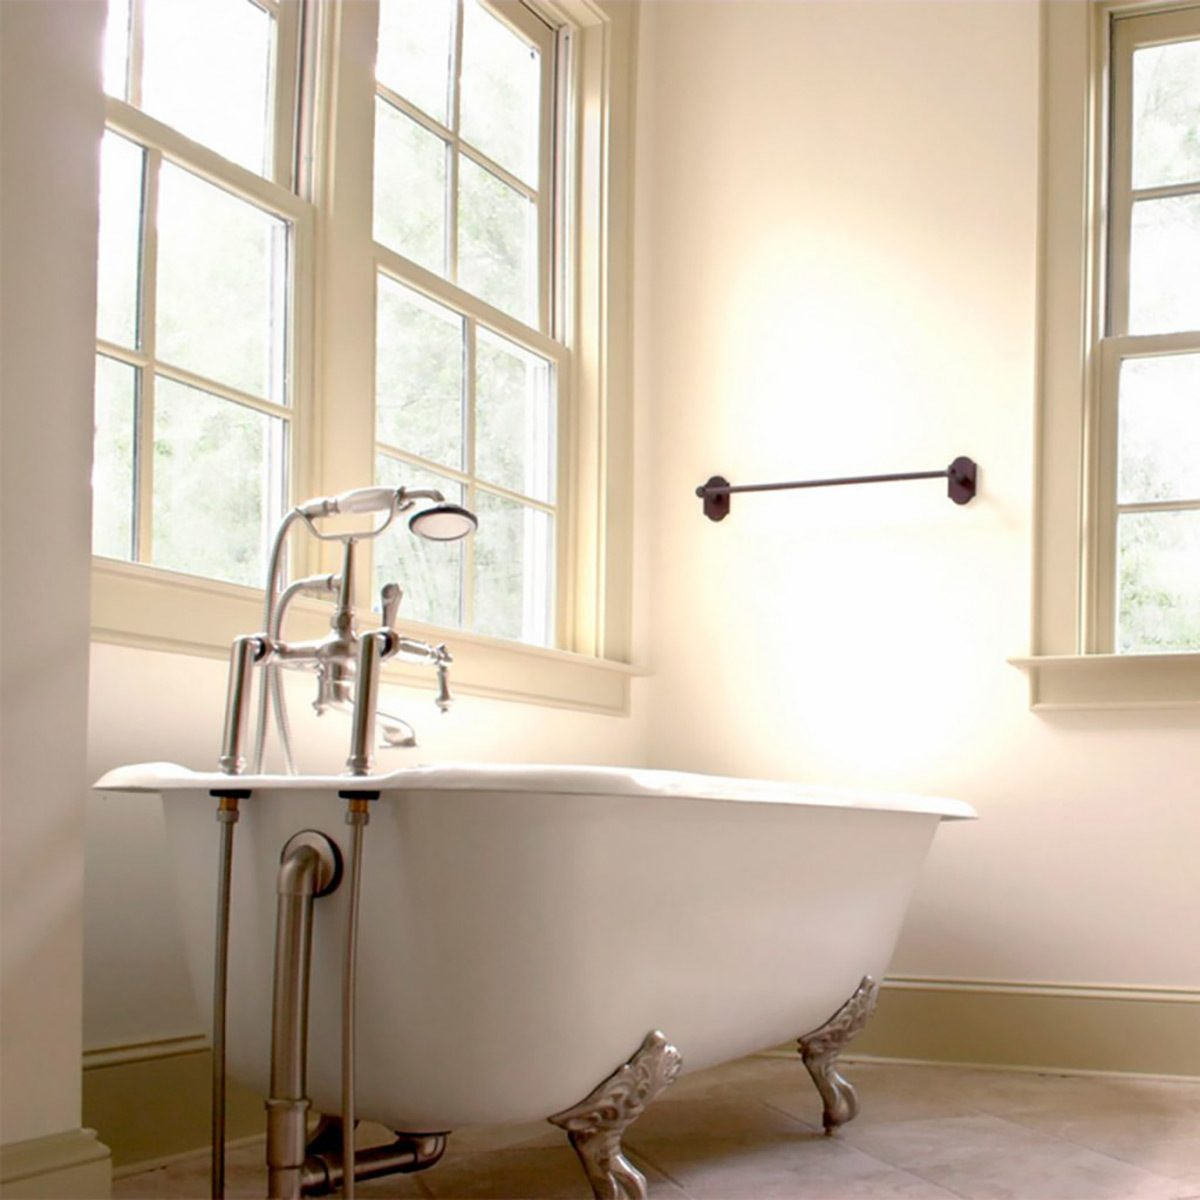 Things To Consider When Buying A New Bathtub Family Handyman - Bathroom tub plumbing